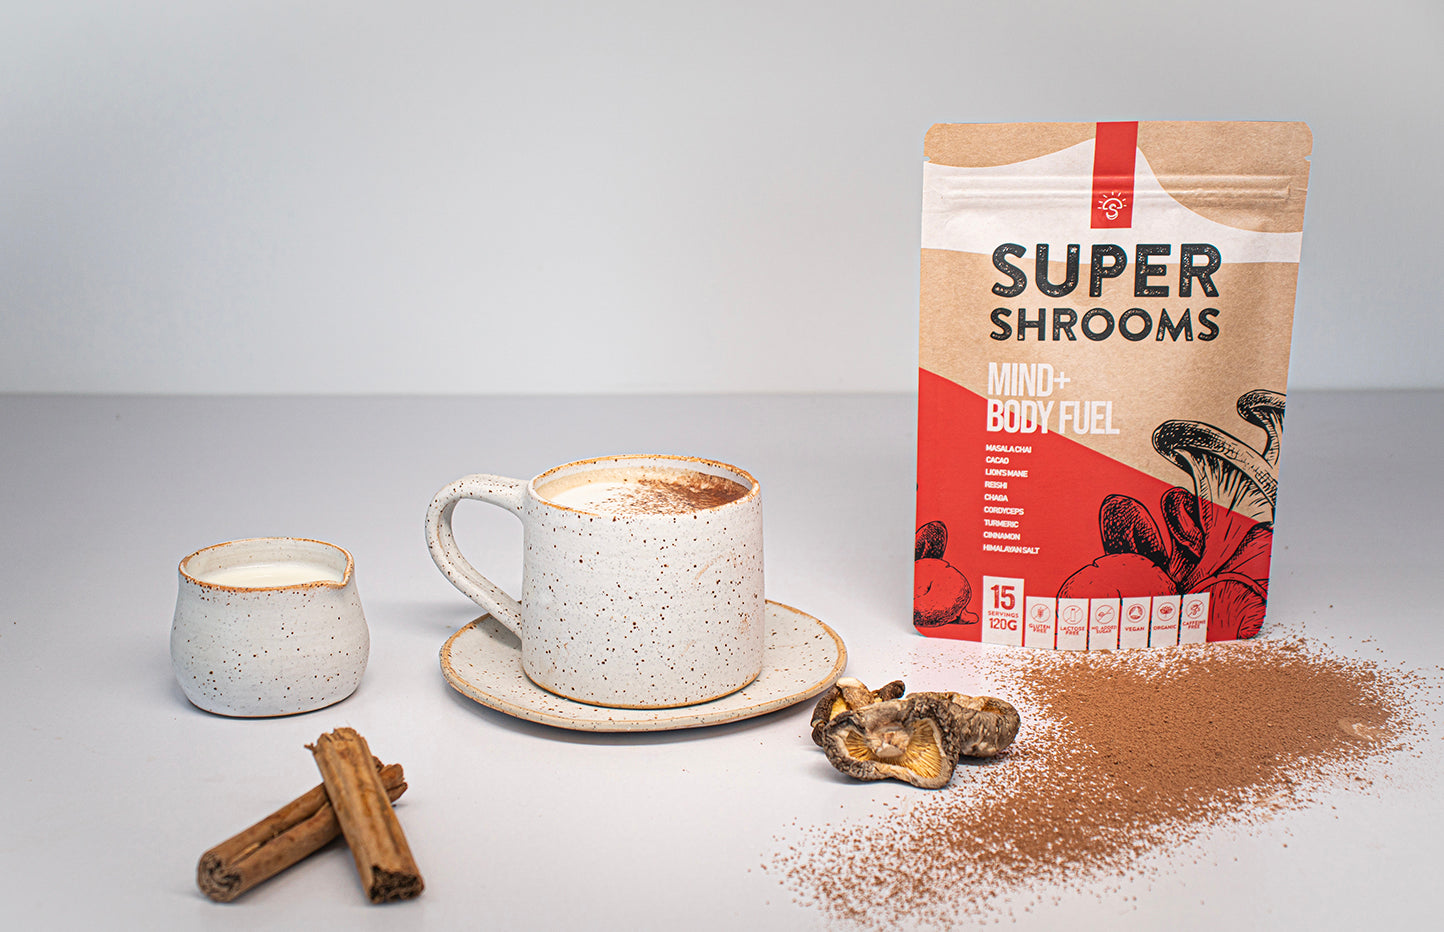 Mind Body fuel -Super Shrooms